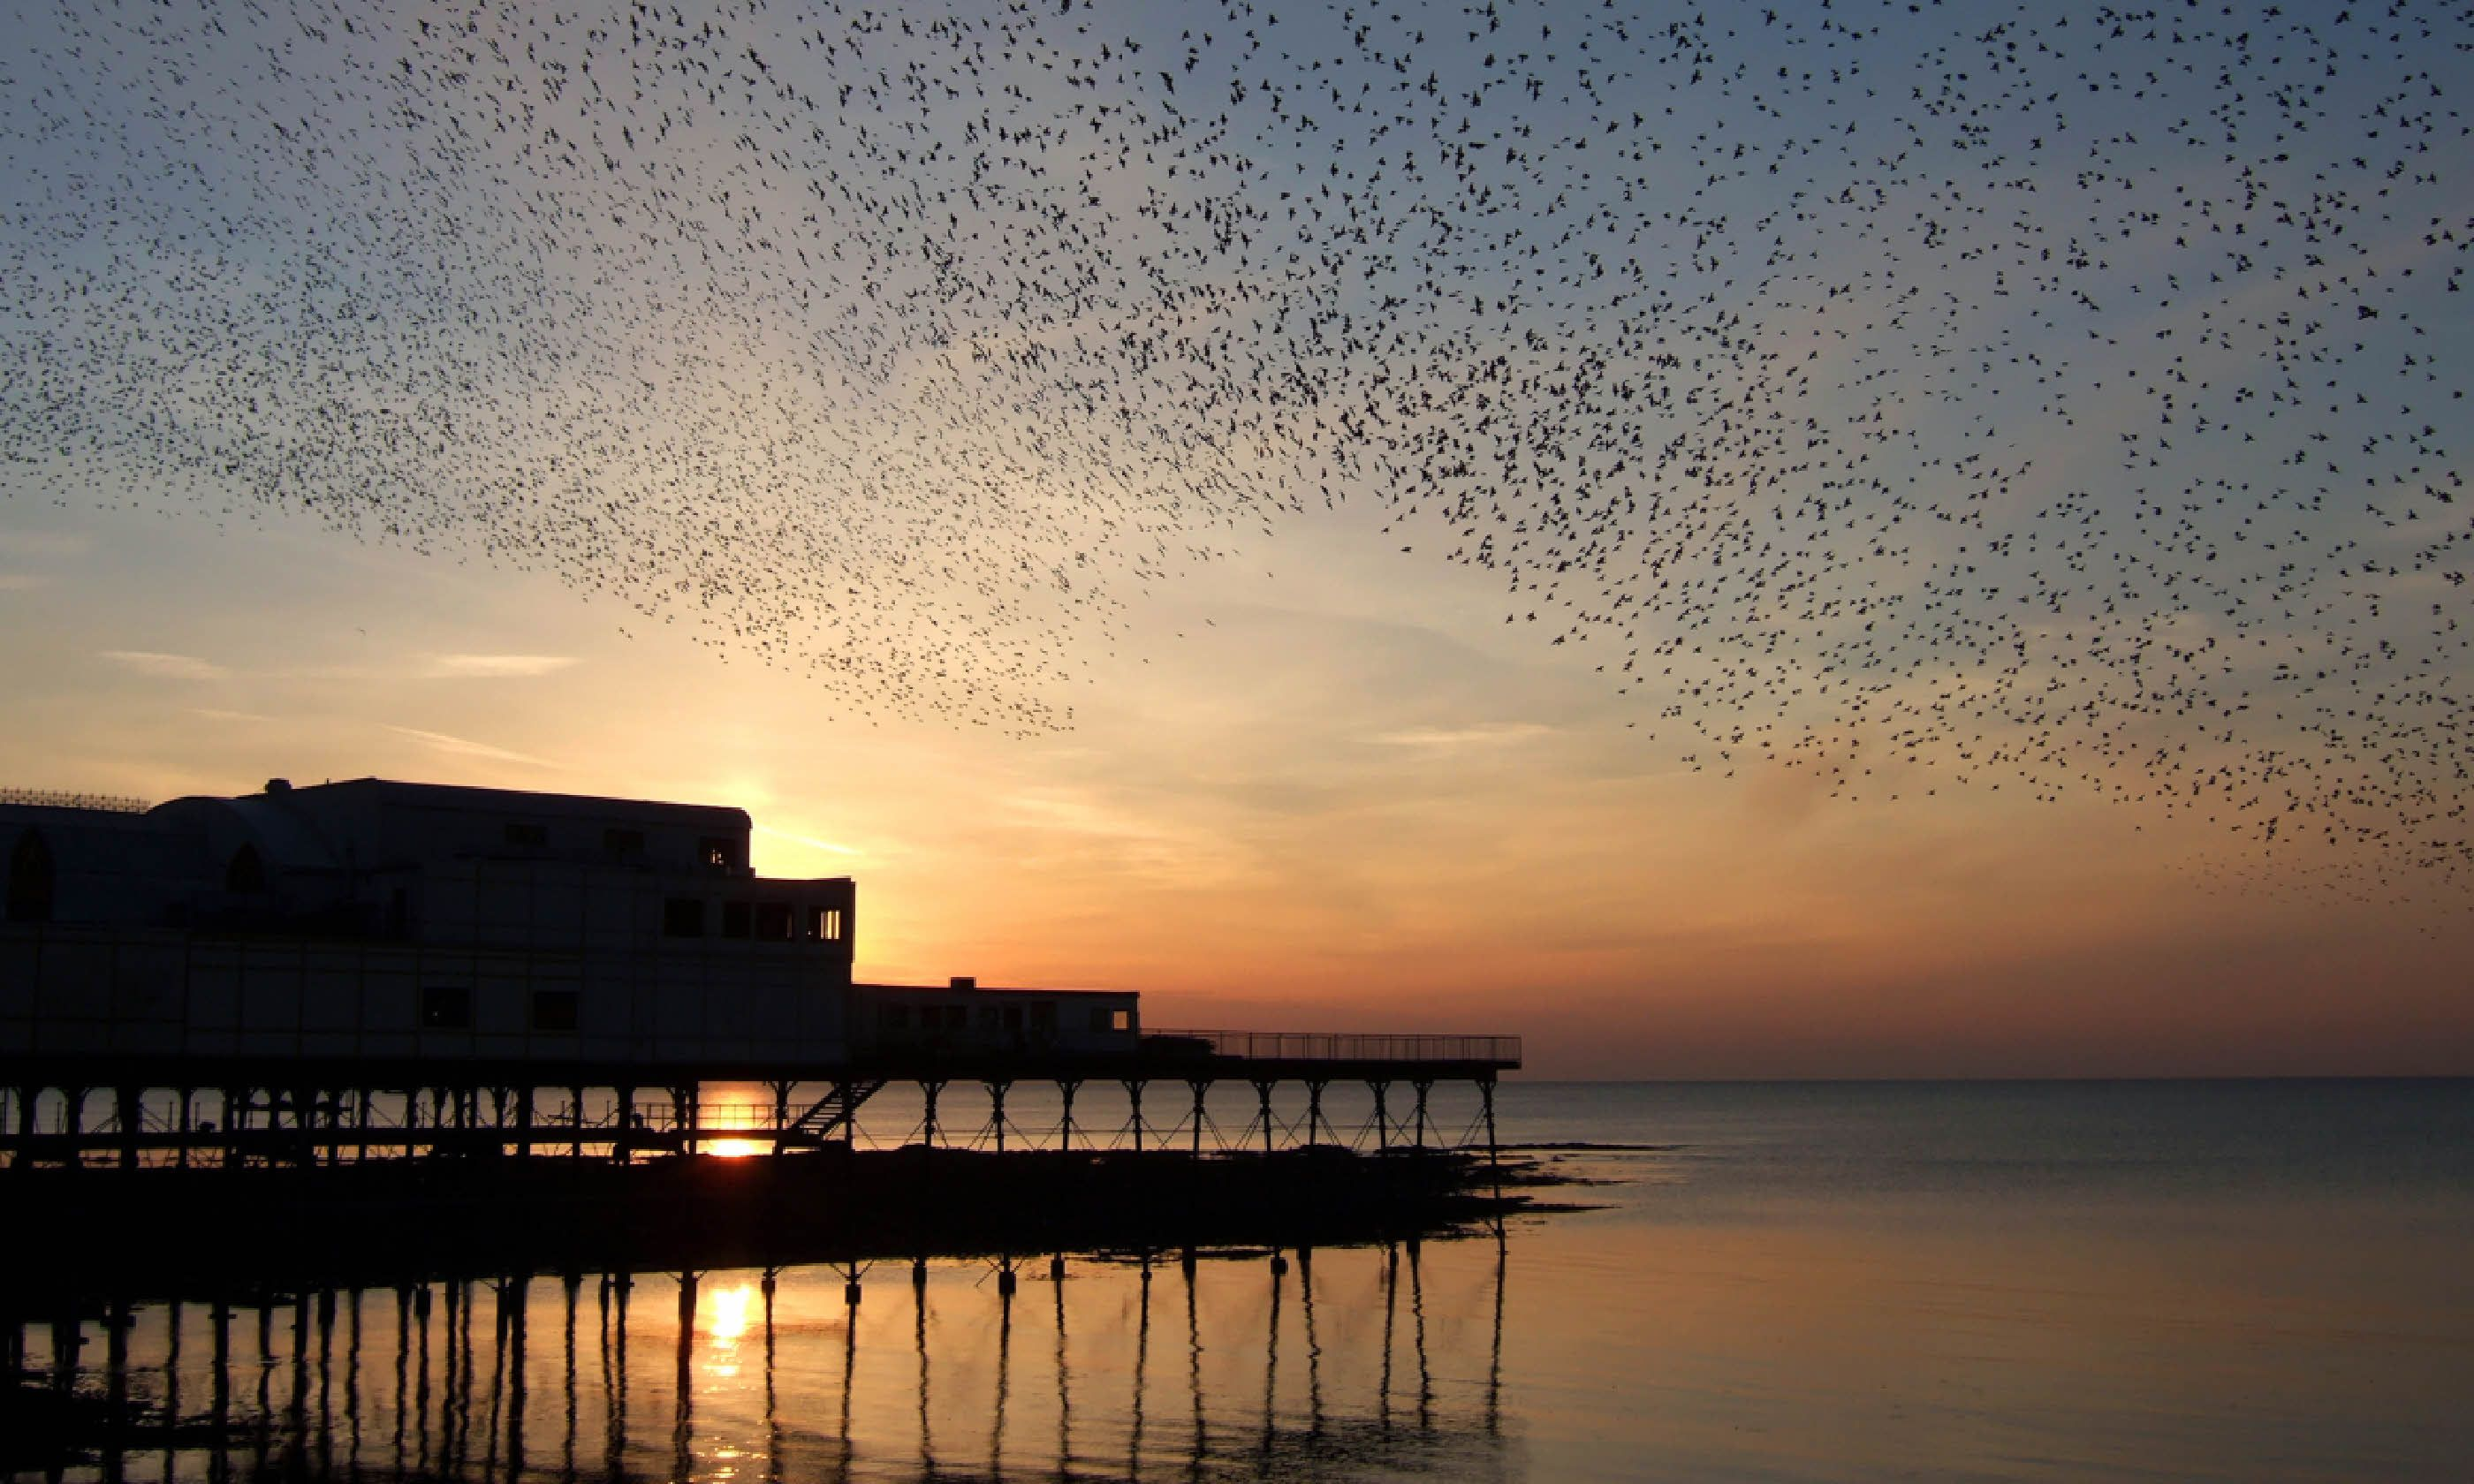 Huge flock of starlings over Aberystwyth Pier (Shutterstock)